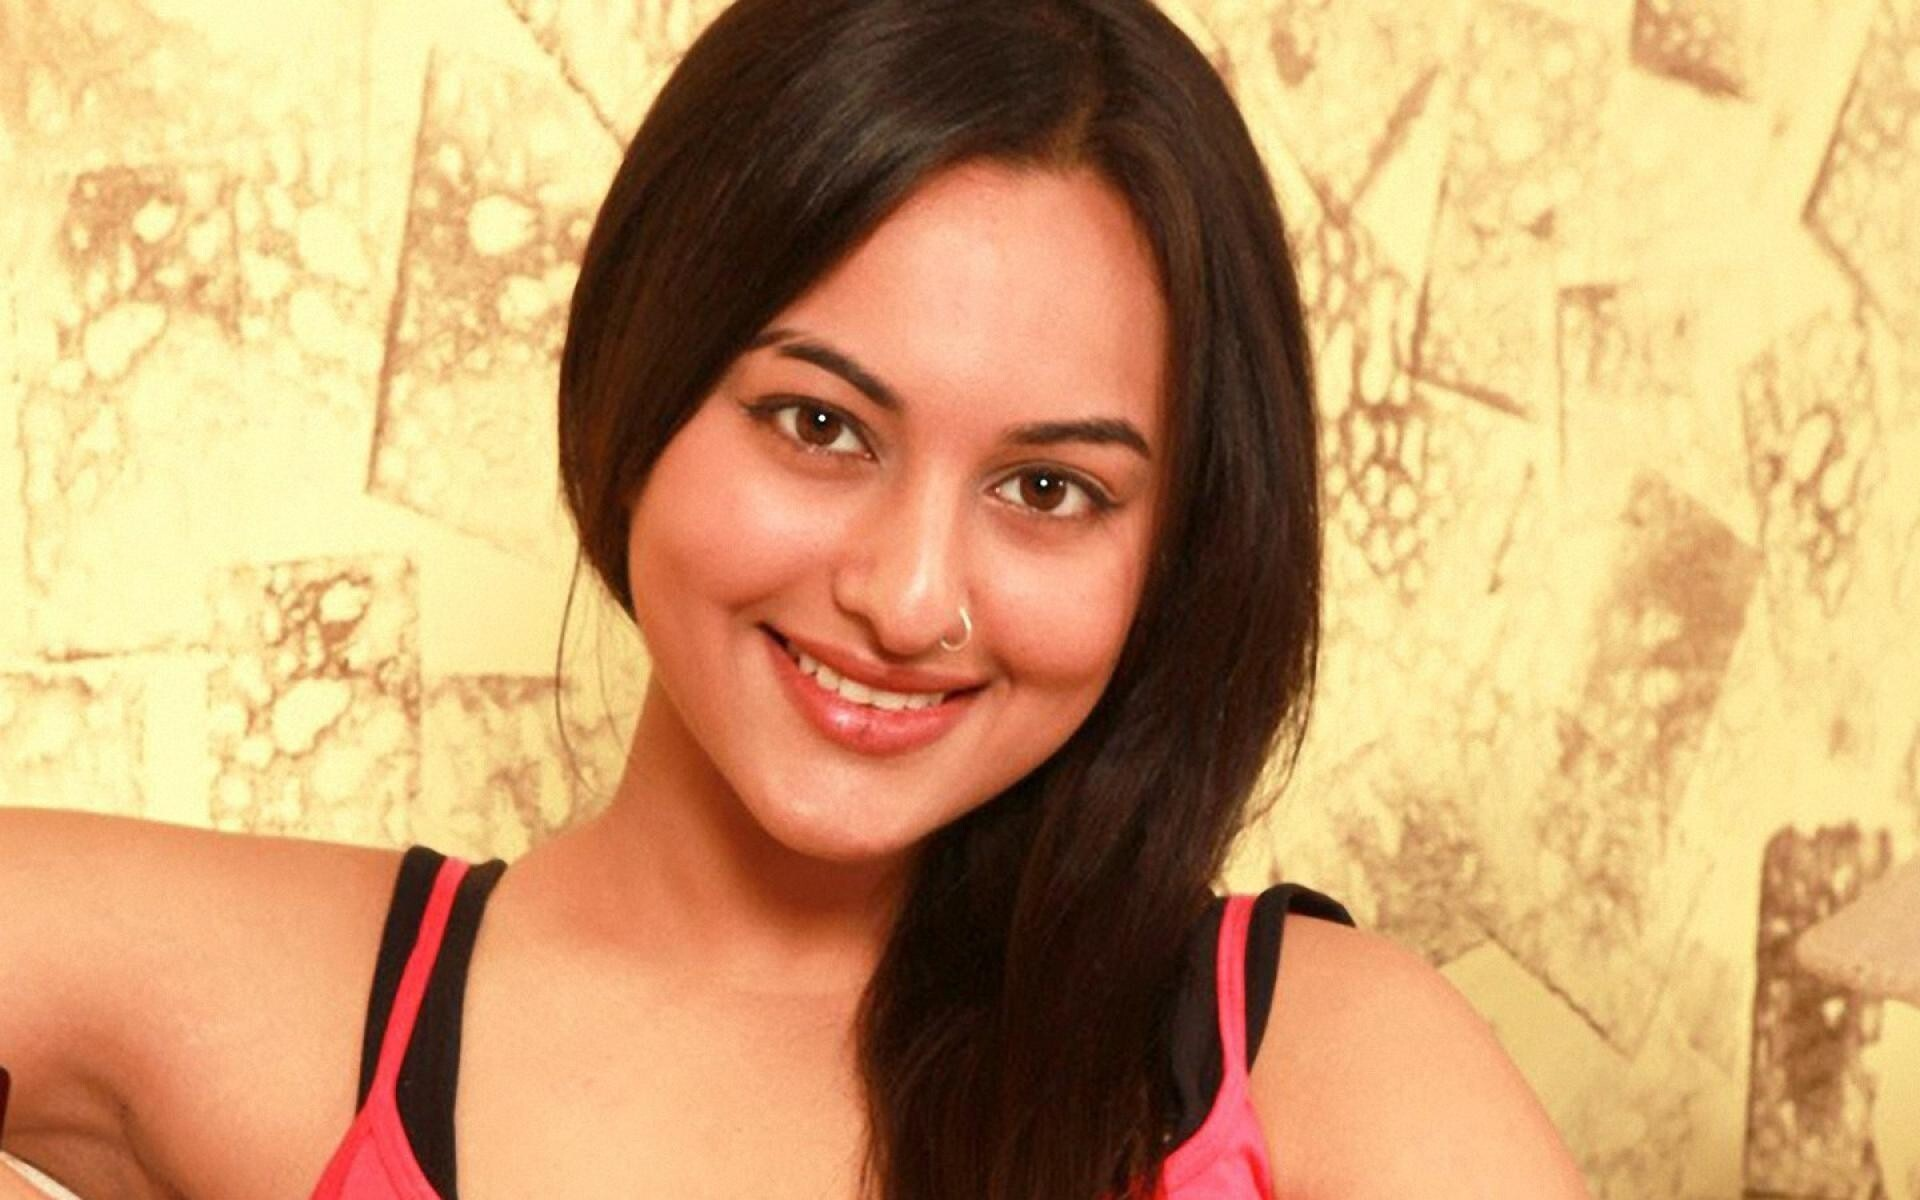 cute face of sonakshi sinha | hd wallpapers